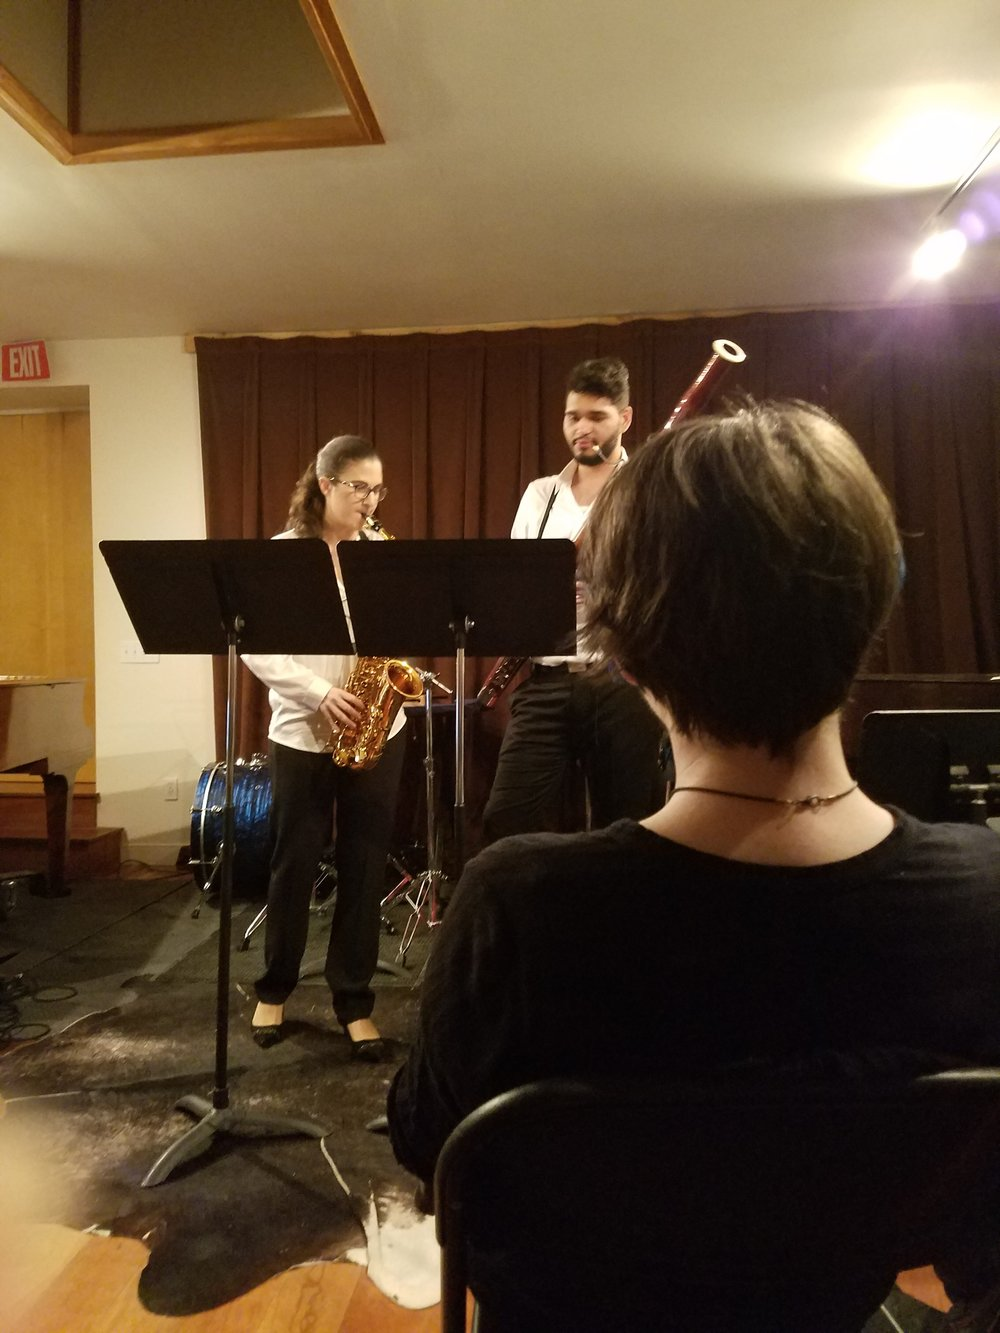 Xelana Duo at The Firehouse Space